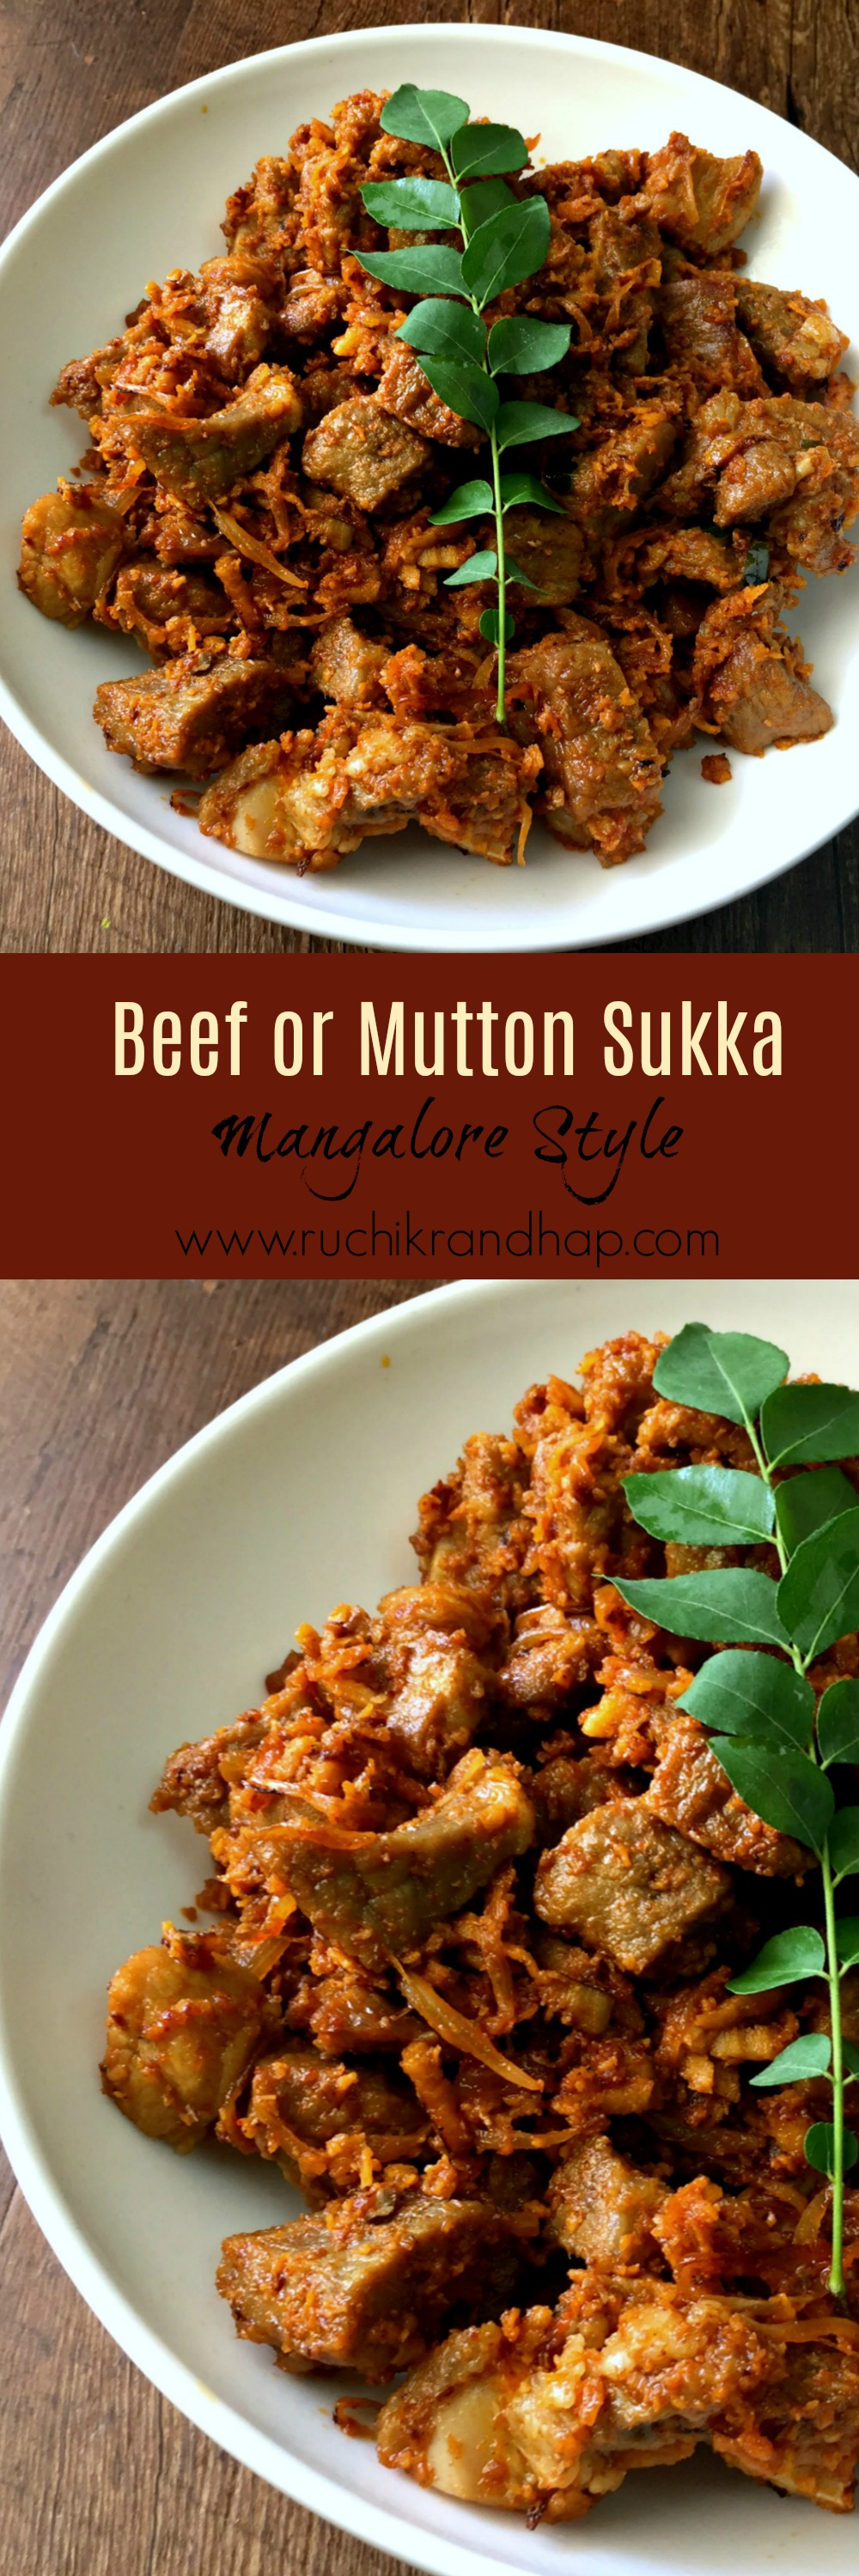 Beef Sukka Video Ruchik Randhap Mutton Recipes Indian Food Recipes Curry Dishes